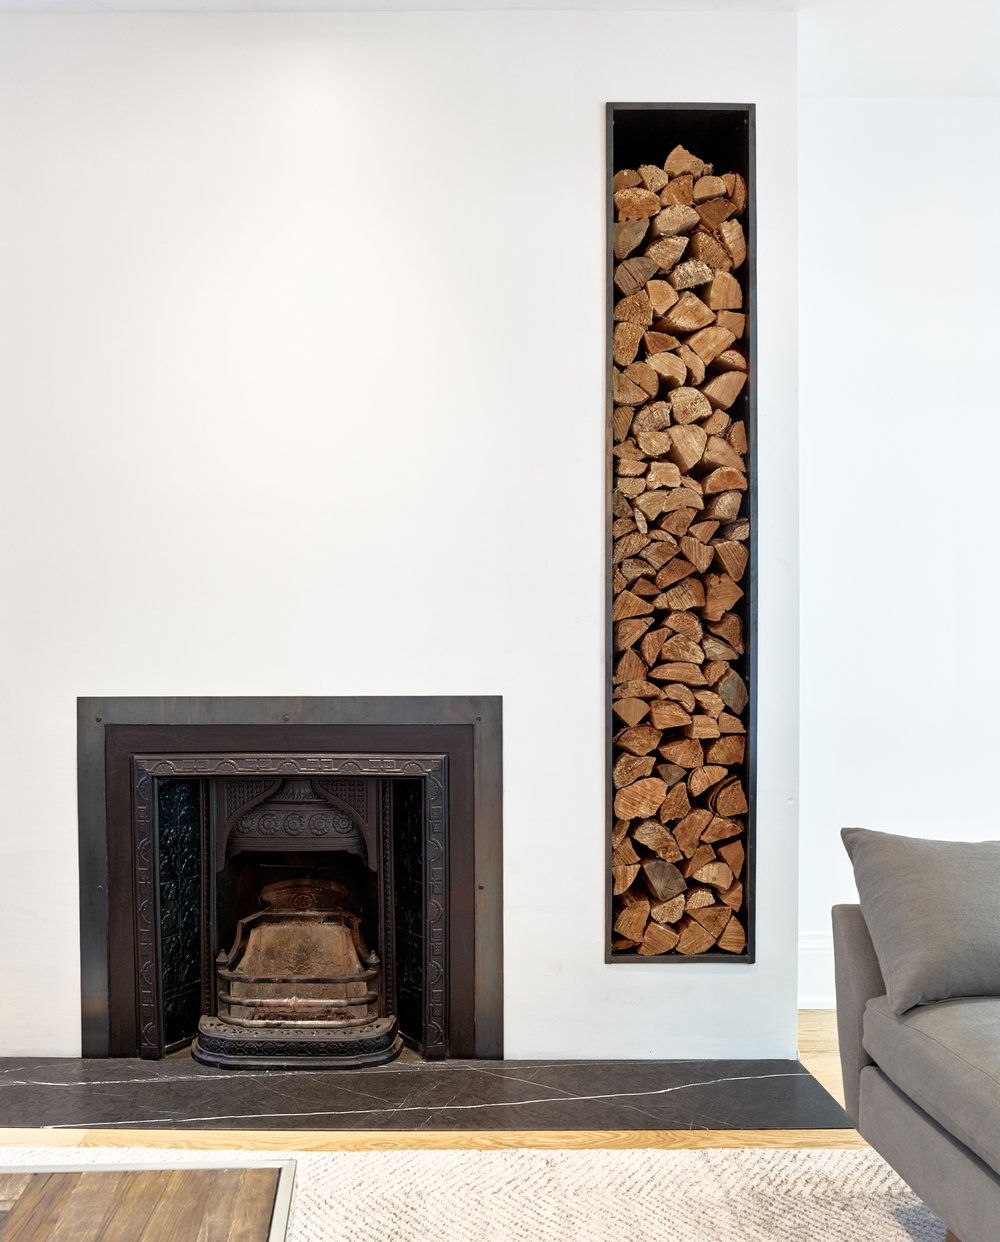 Classic fireplace of the house was kept intact while revamping the space around it